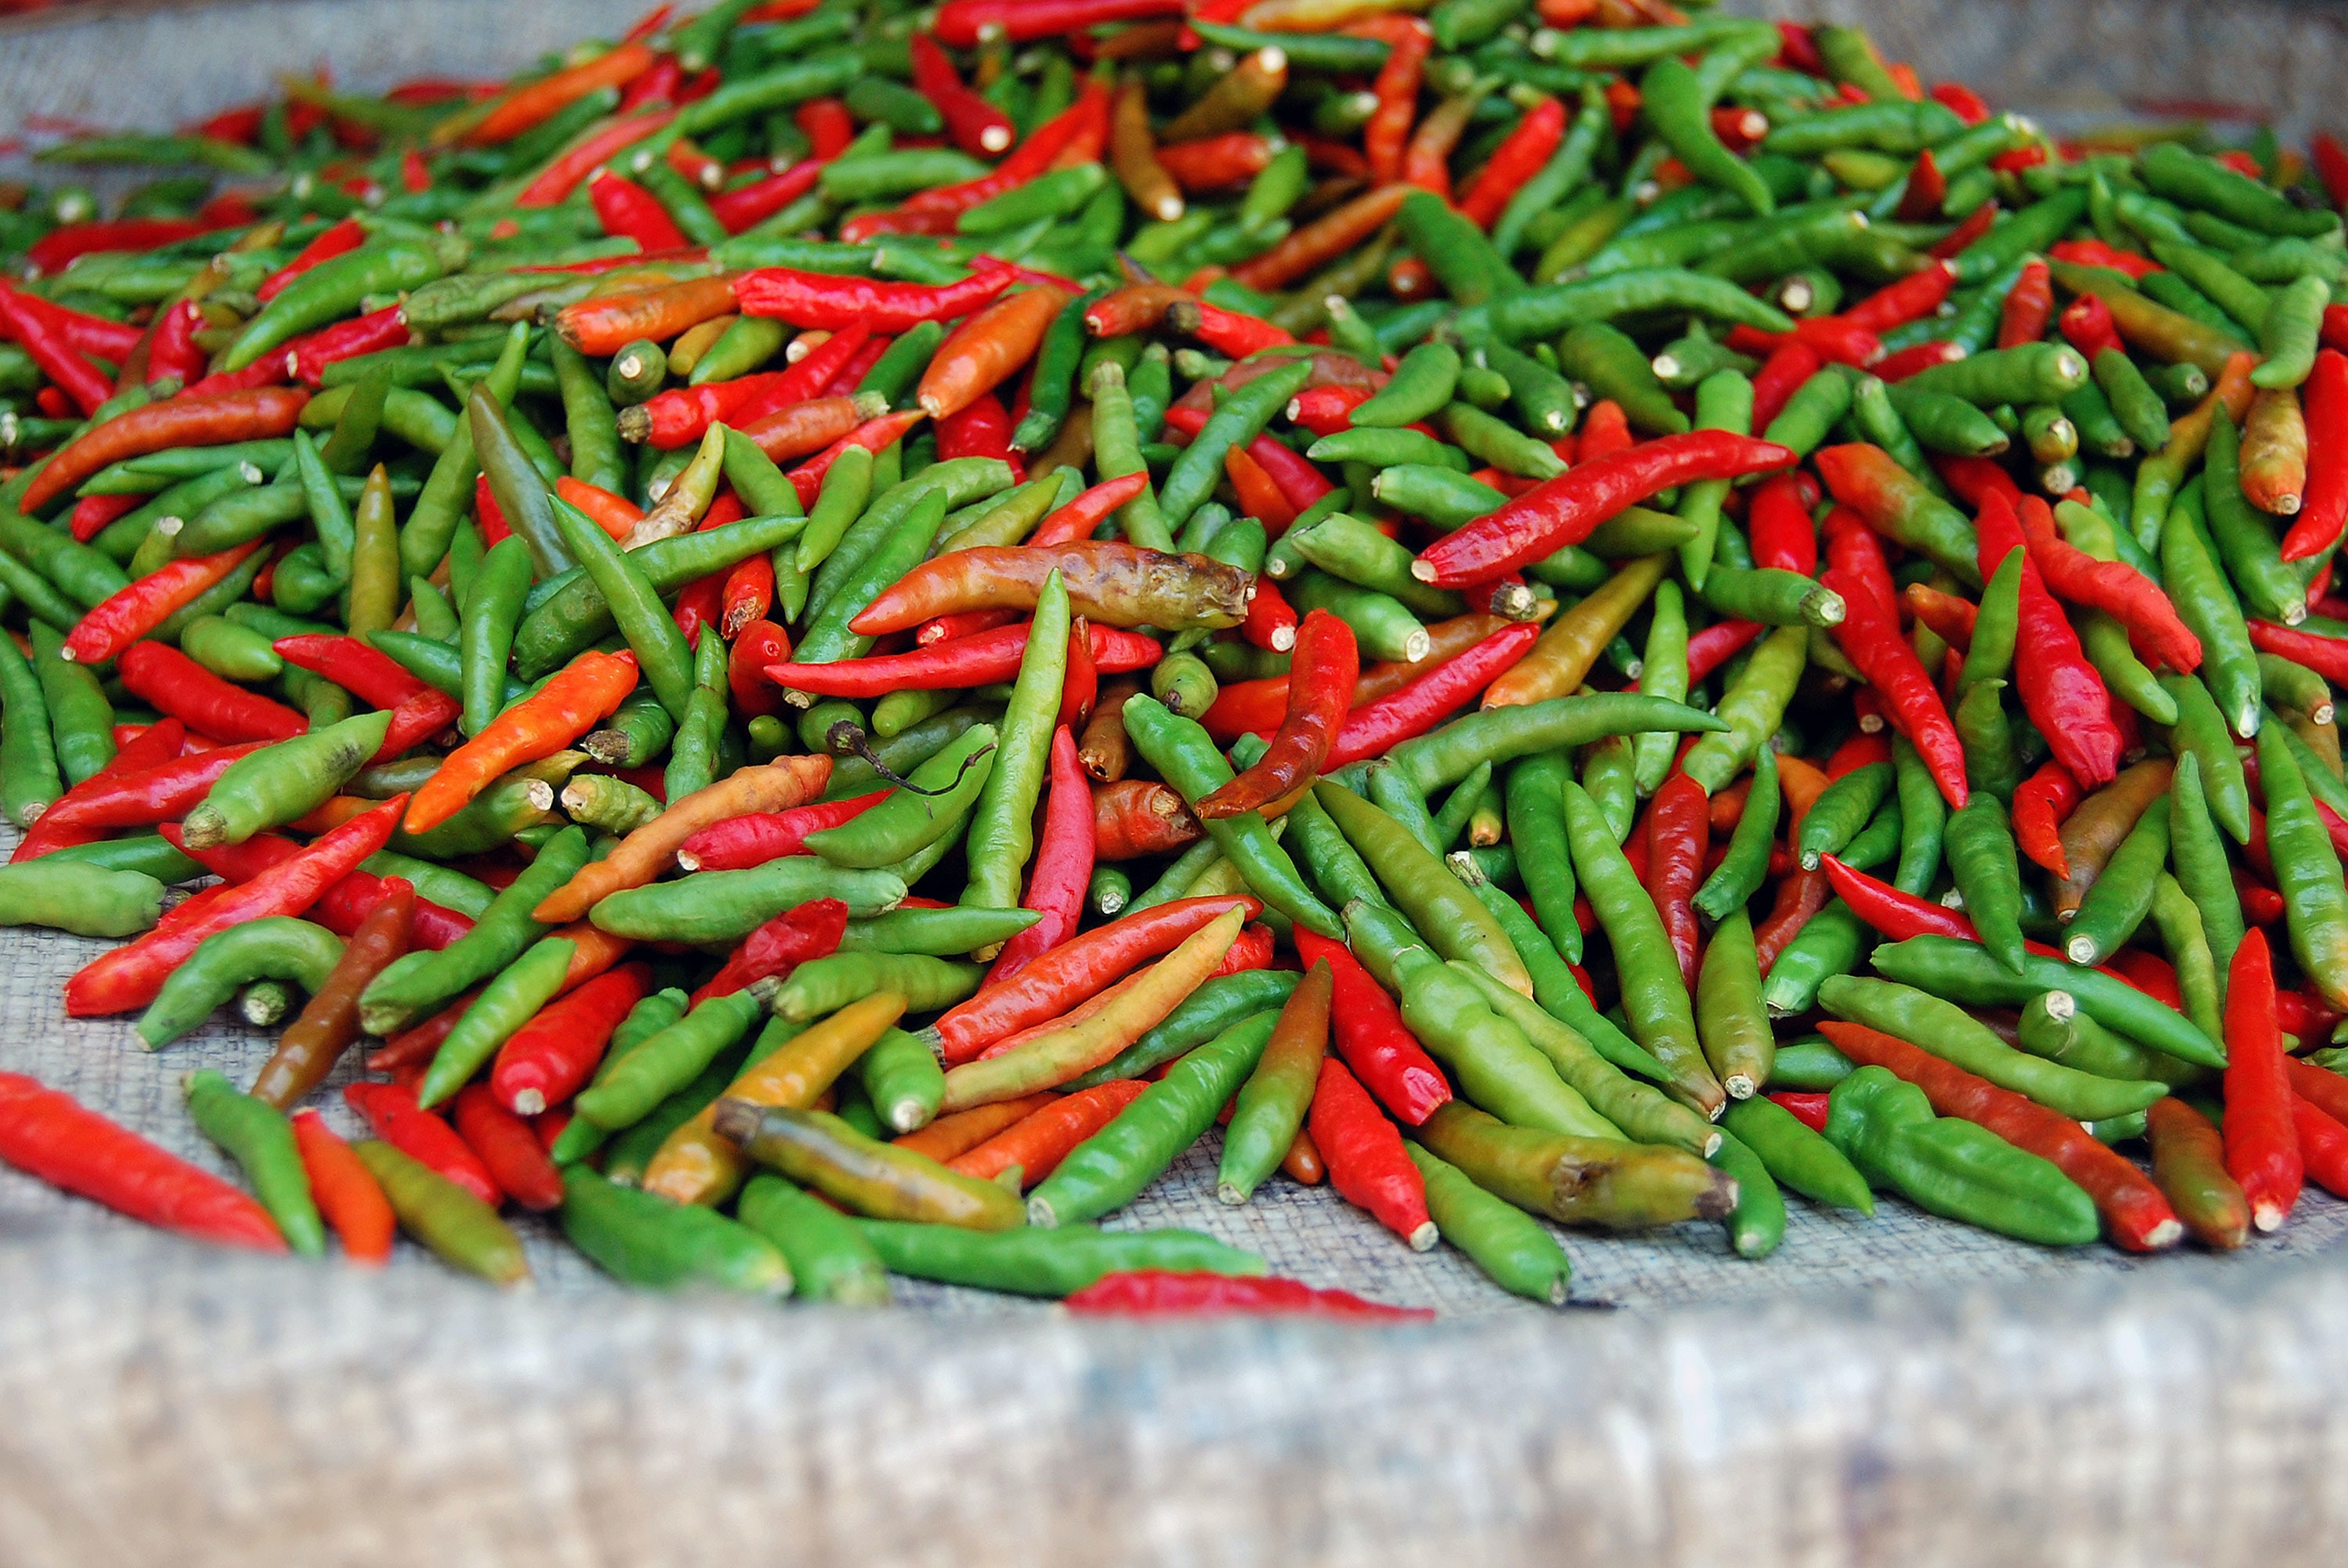 Red and green chili peppers gathered in a cloth